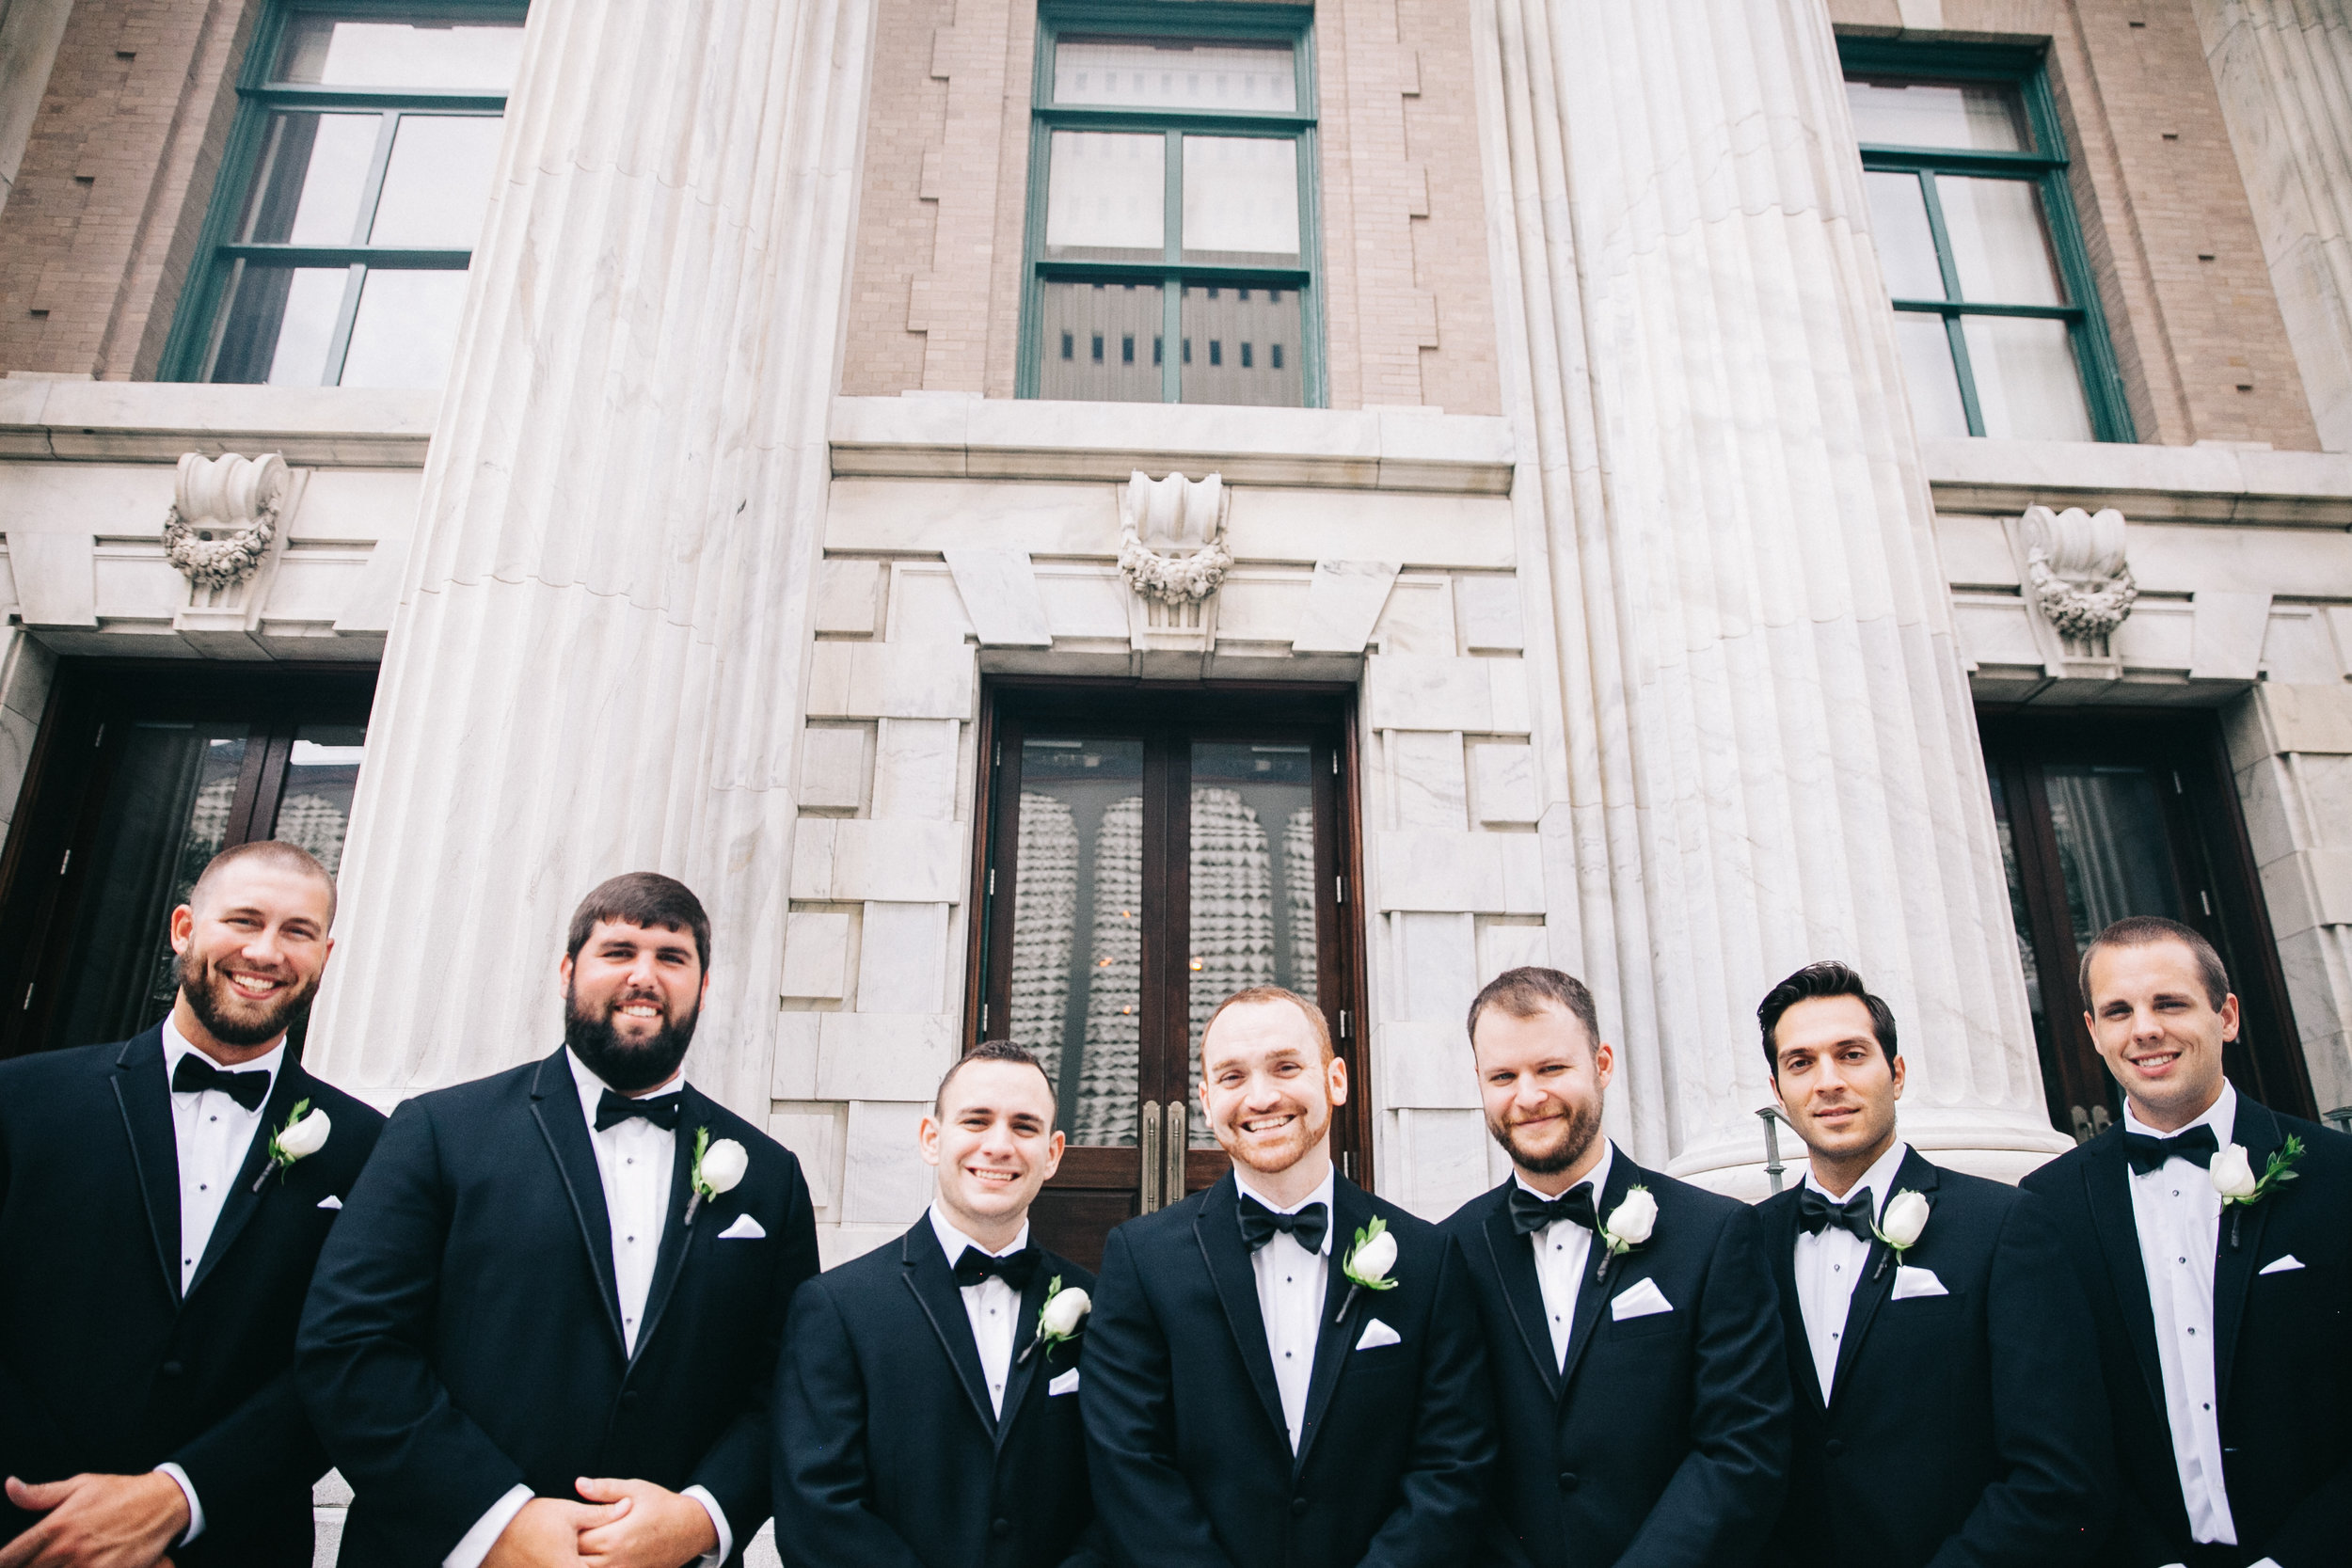 Tampa Industrial wedding at the Rialto Theater_041.jpg